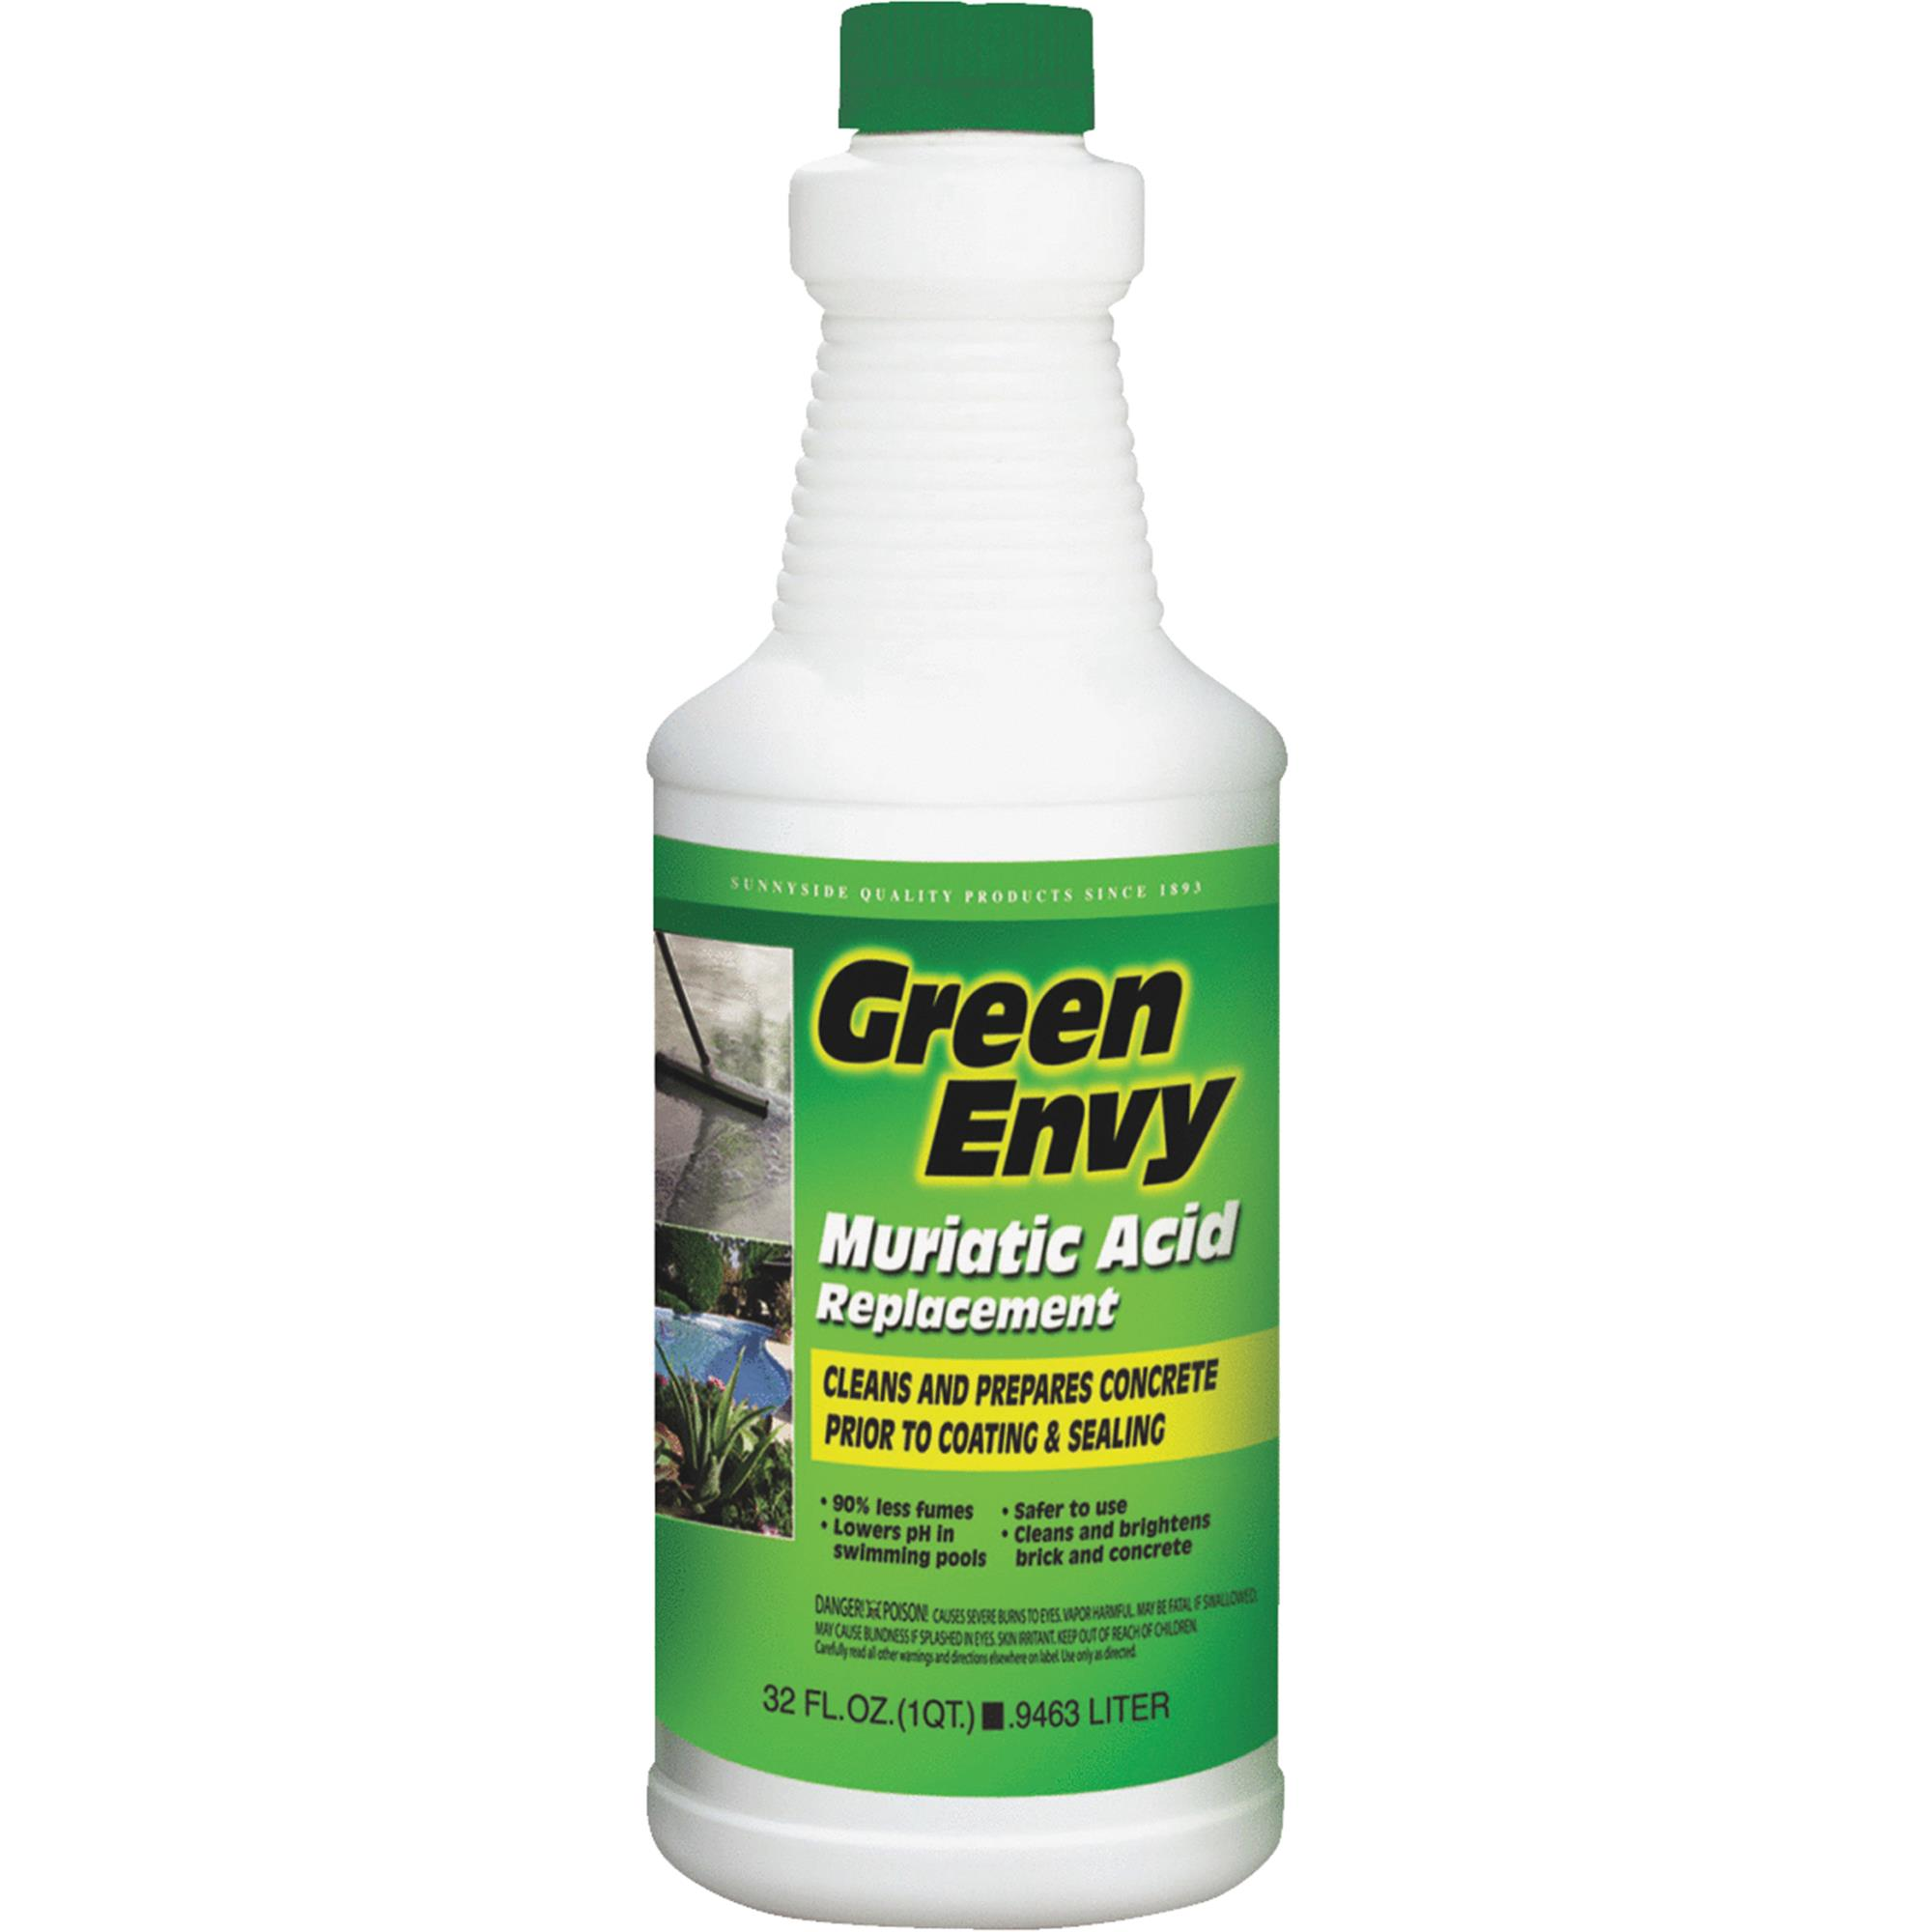 Sunnyside Green Envy Muriatic Acid